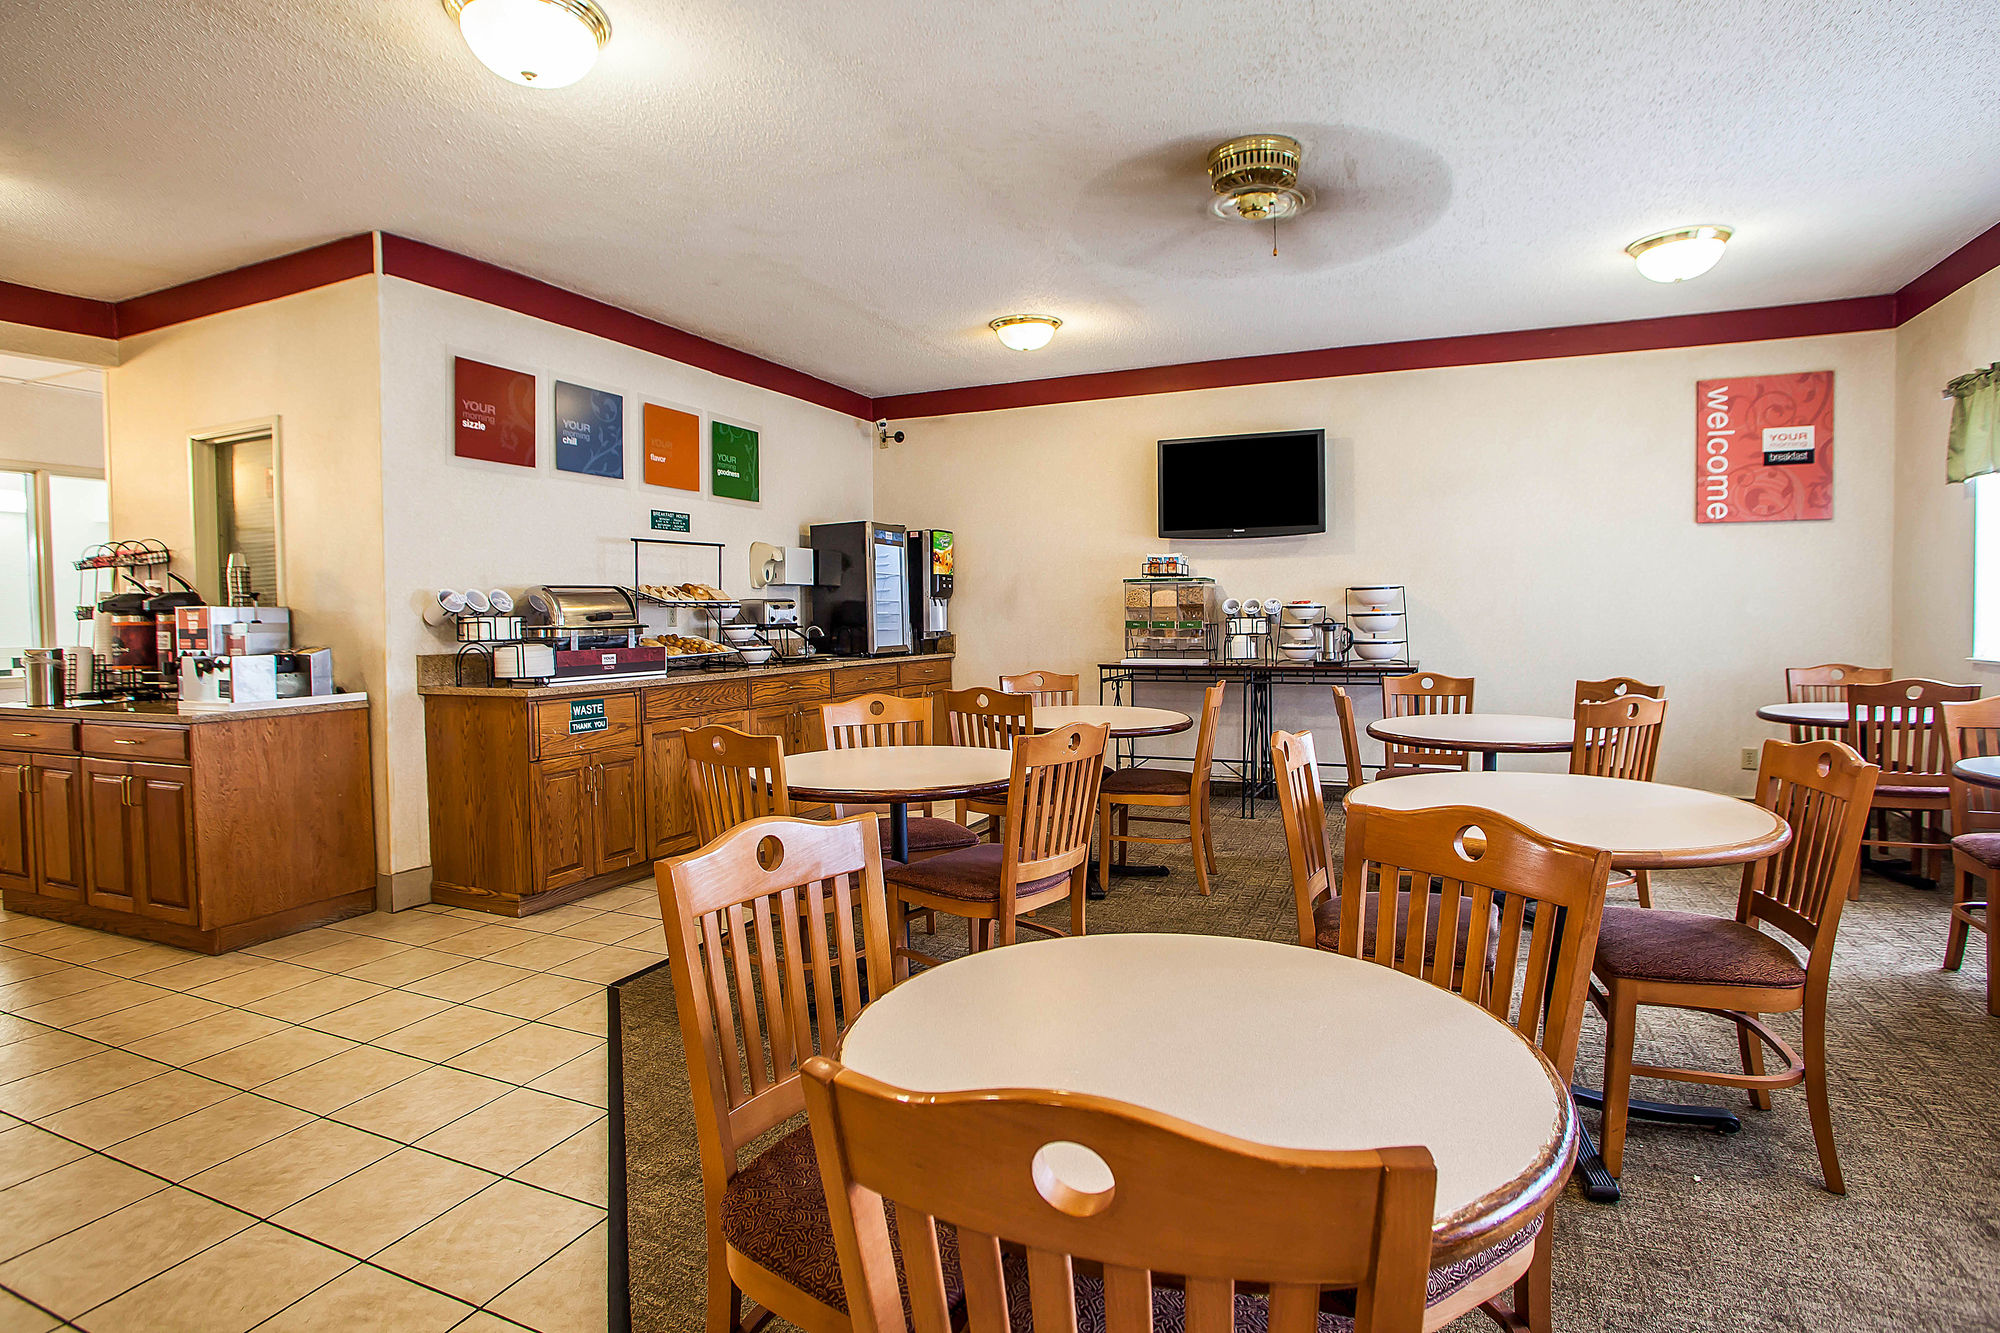 Rockford Hotel Coupons for Rockford, Illinois - FreeHotelCoupons.com